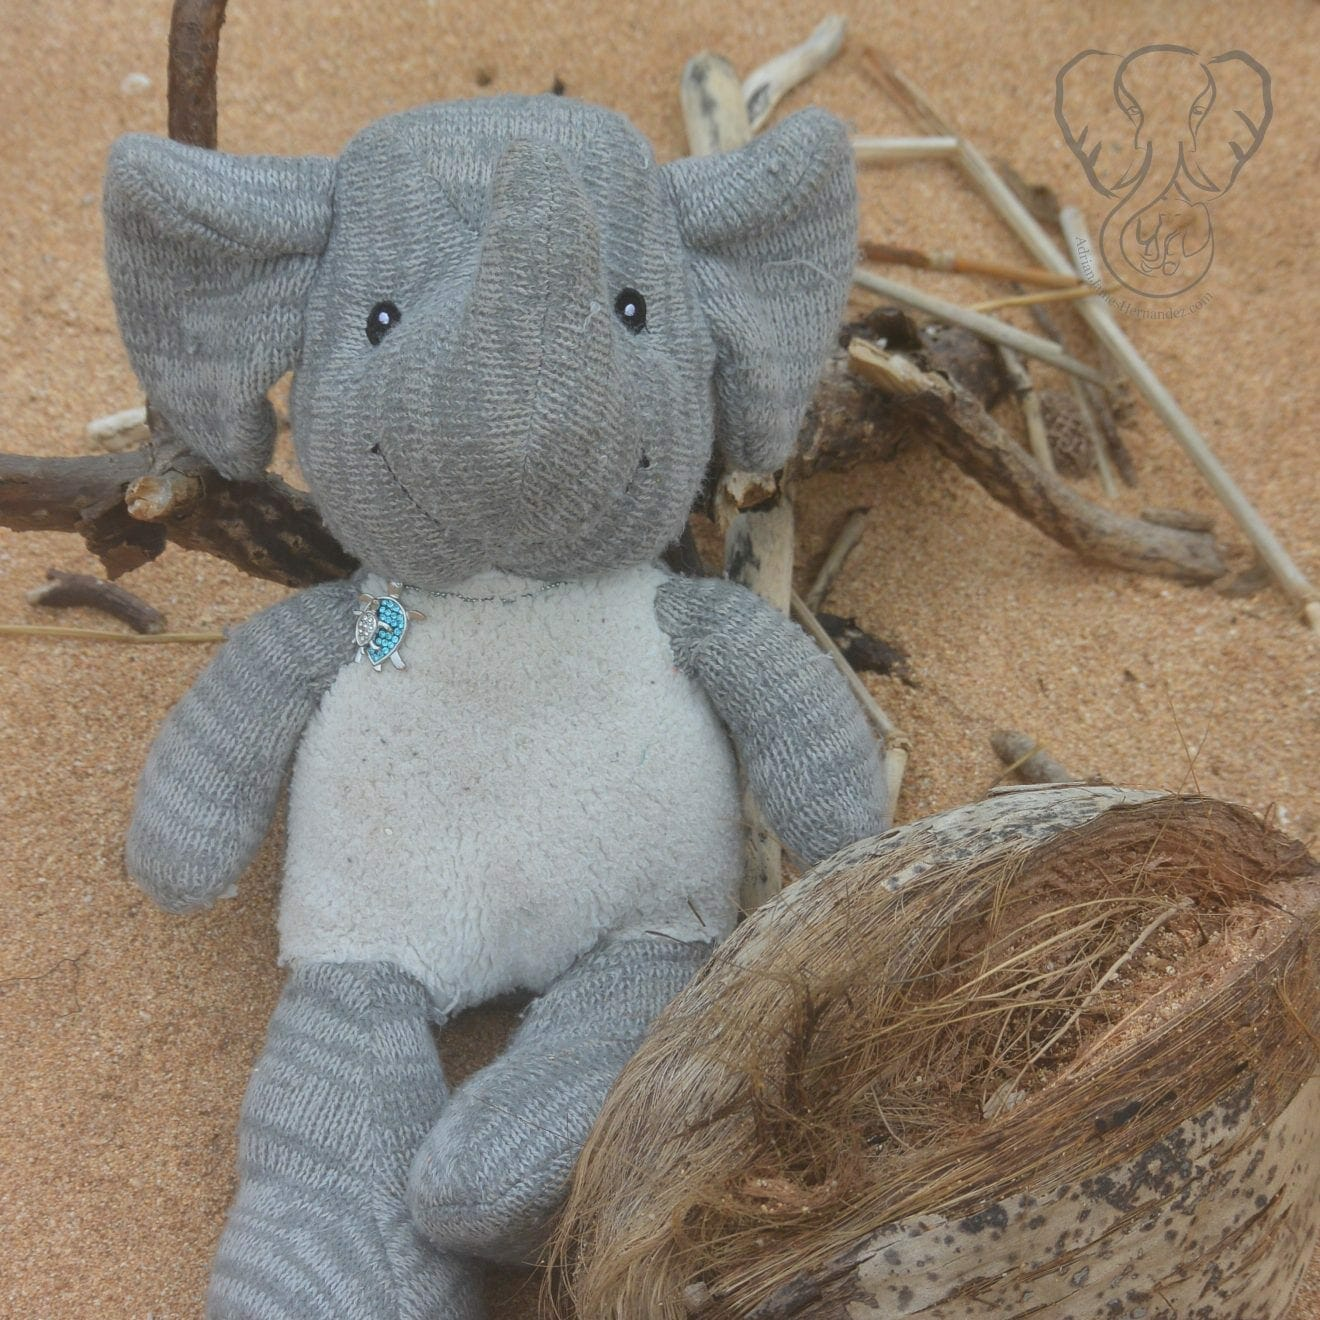 Adrian's Elephant on Keālia Beach in Kaua'i, Hawai'i (Miranda Hernandez)